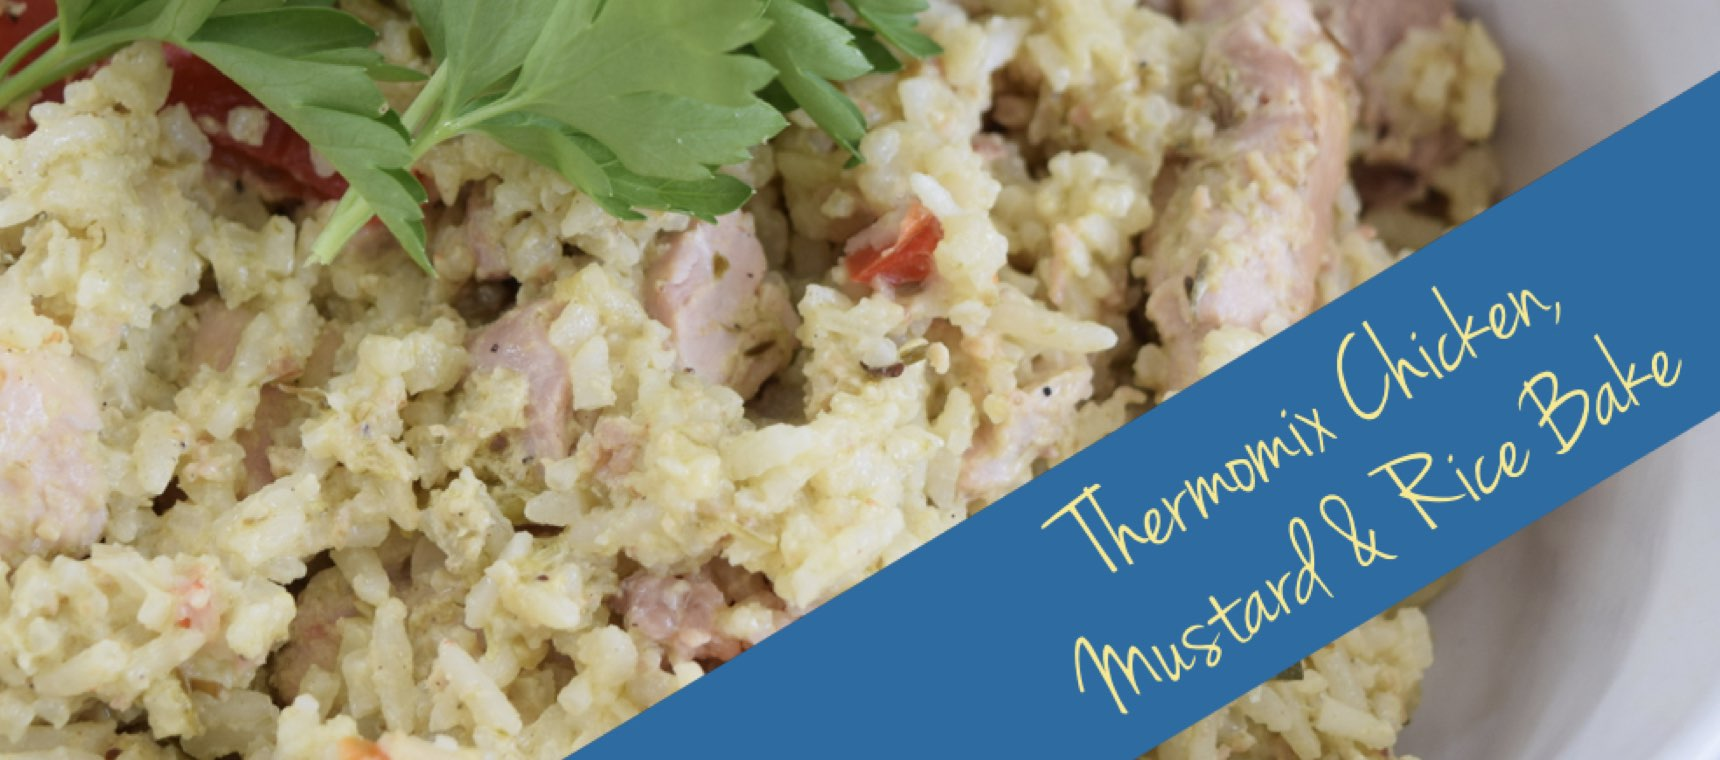 Thermomix Chicken, Mustard and Rice Bake